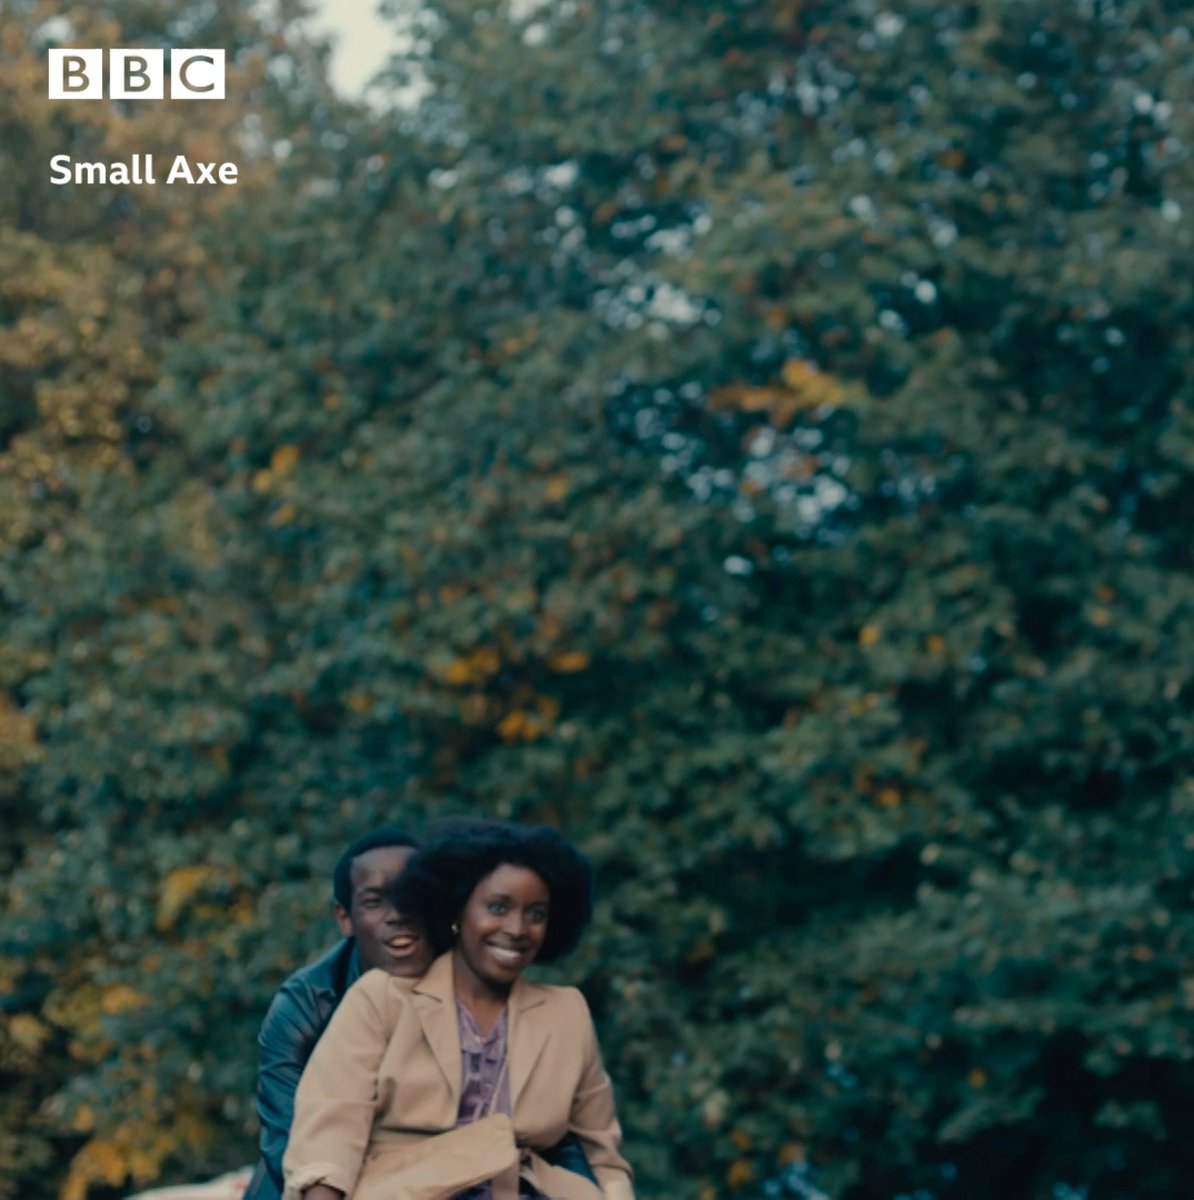 Get ready to fall in love ❤️️  Lovers Rock, part of the #SmallAxe anthology by Steve McQueen, is a fictional story of a couple who meet at a blues party in 1980.   Watch Sunday at 9pm on @BBCOne and @BBCiPlayer.